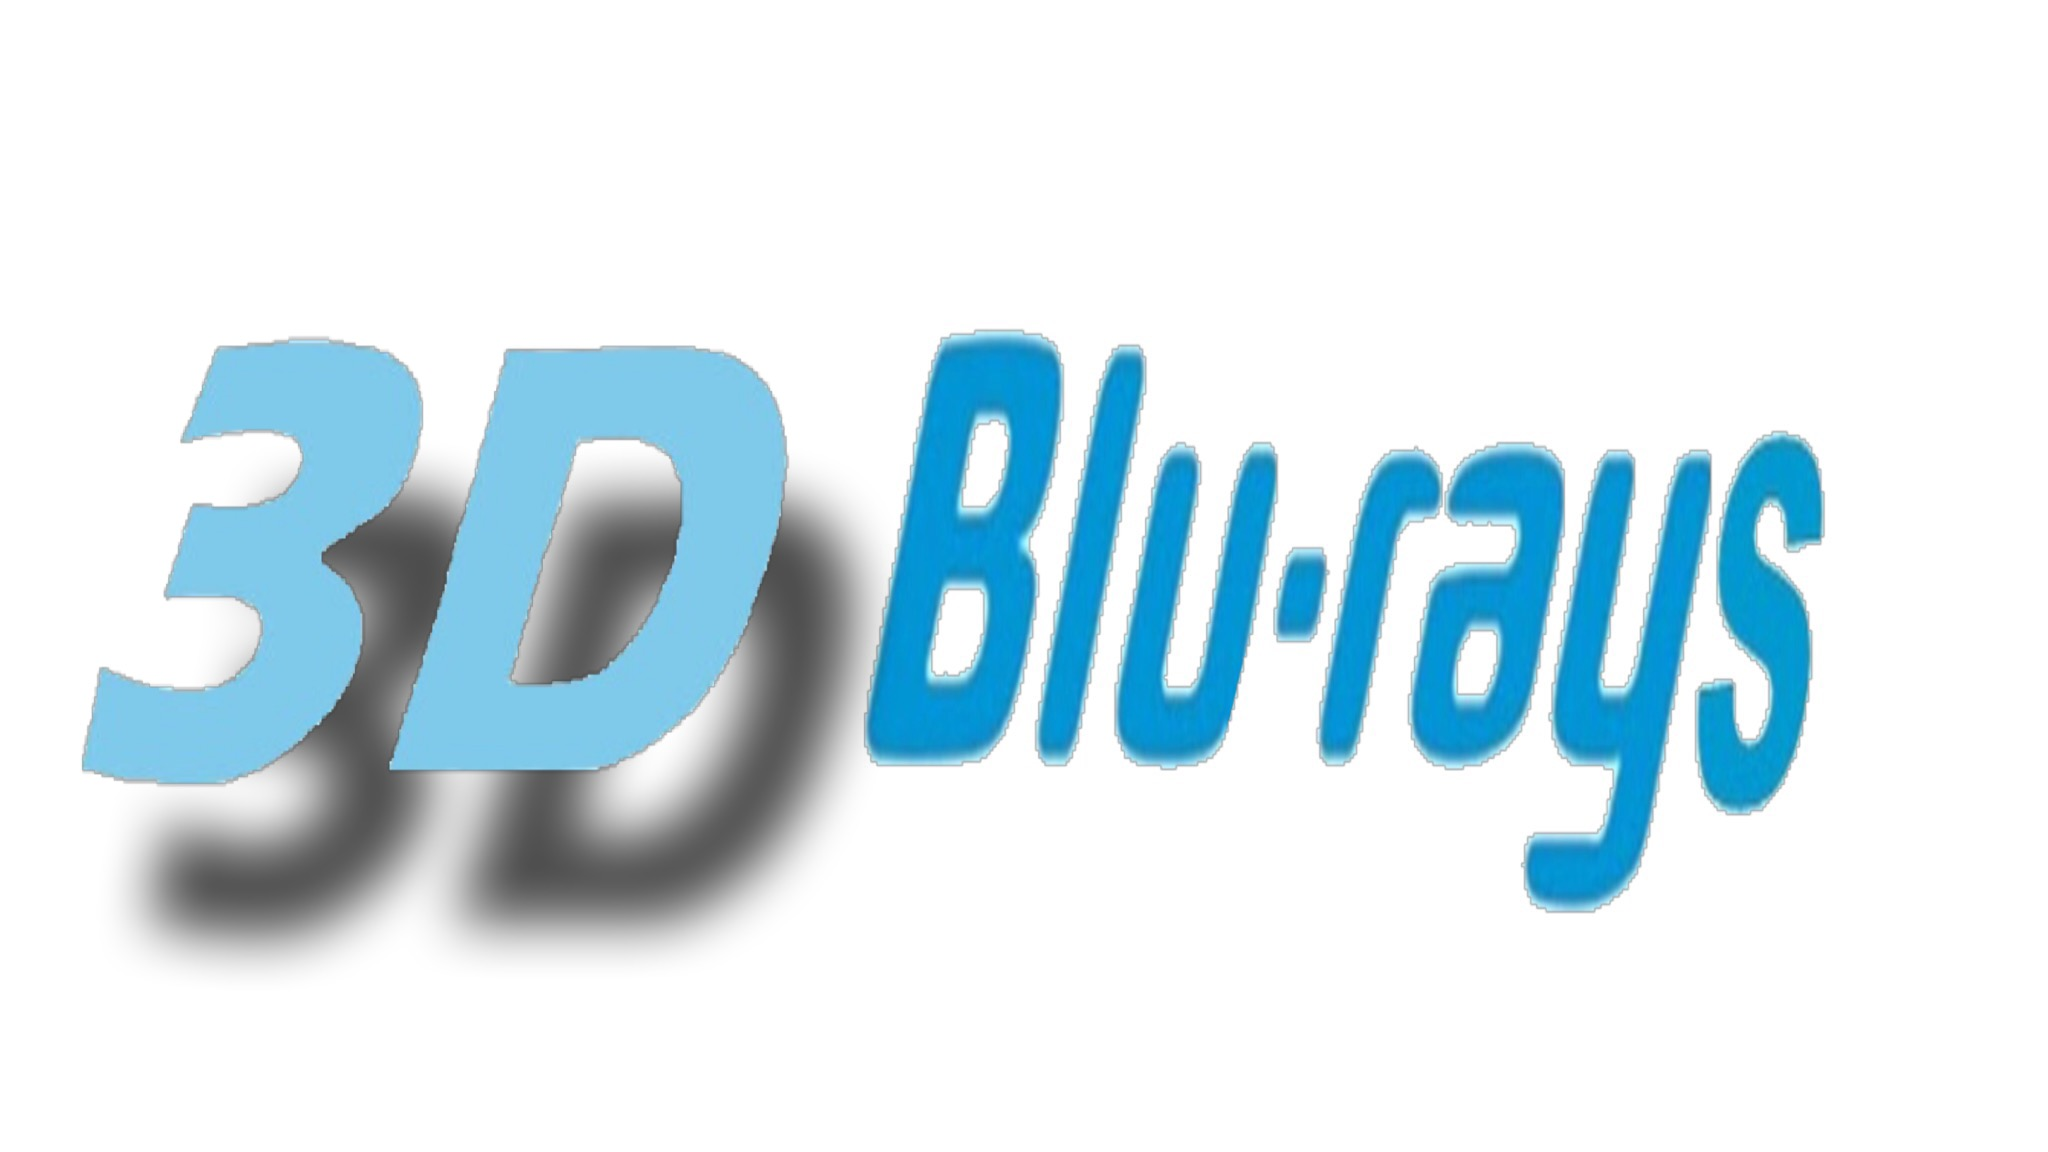 3d-3-d-blu-ray-bluray.JPG